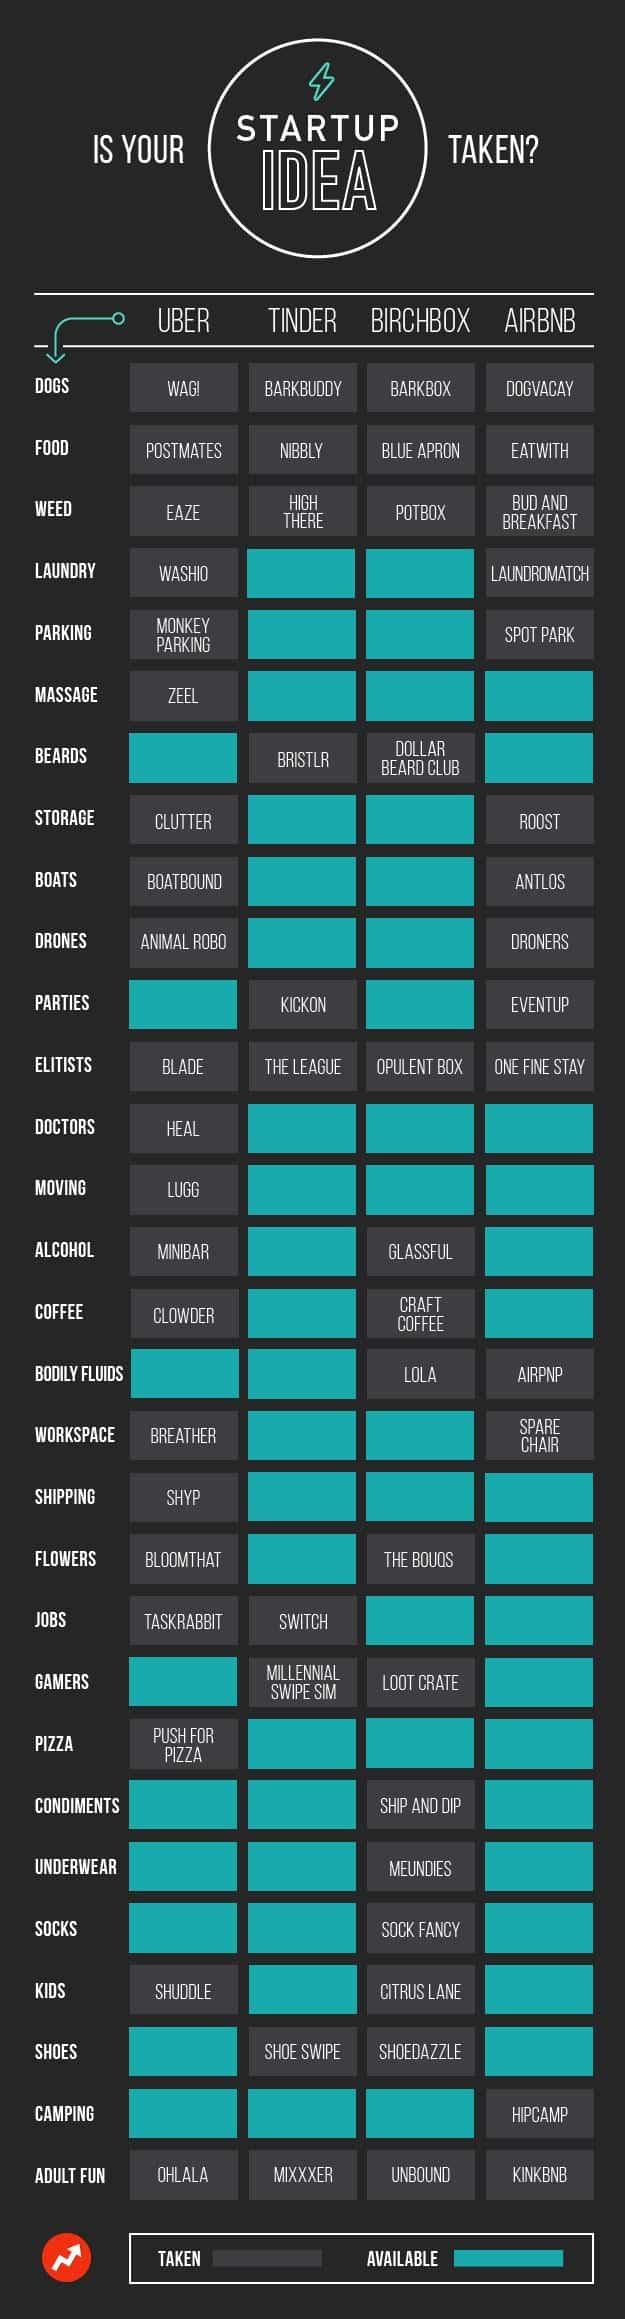 Is Your Startup Idea Taken Infographic